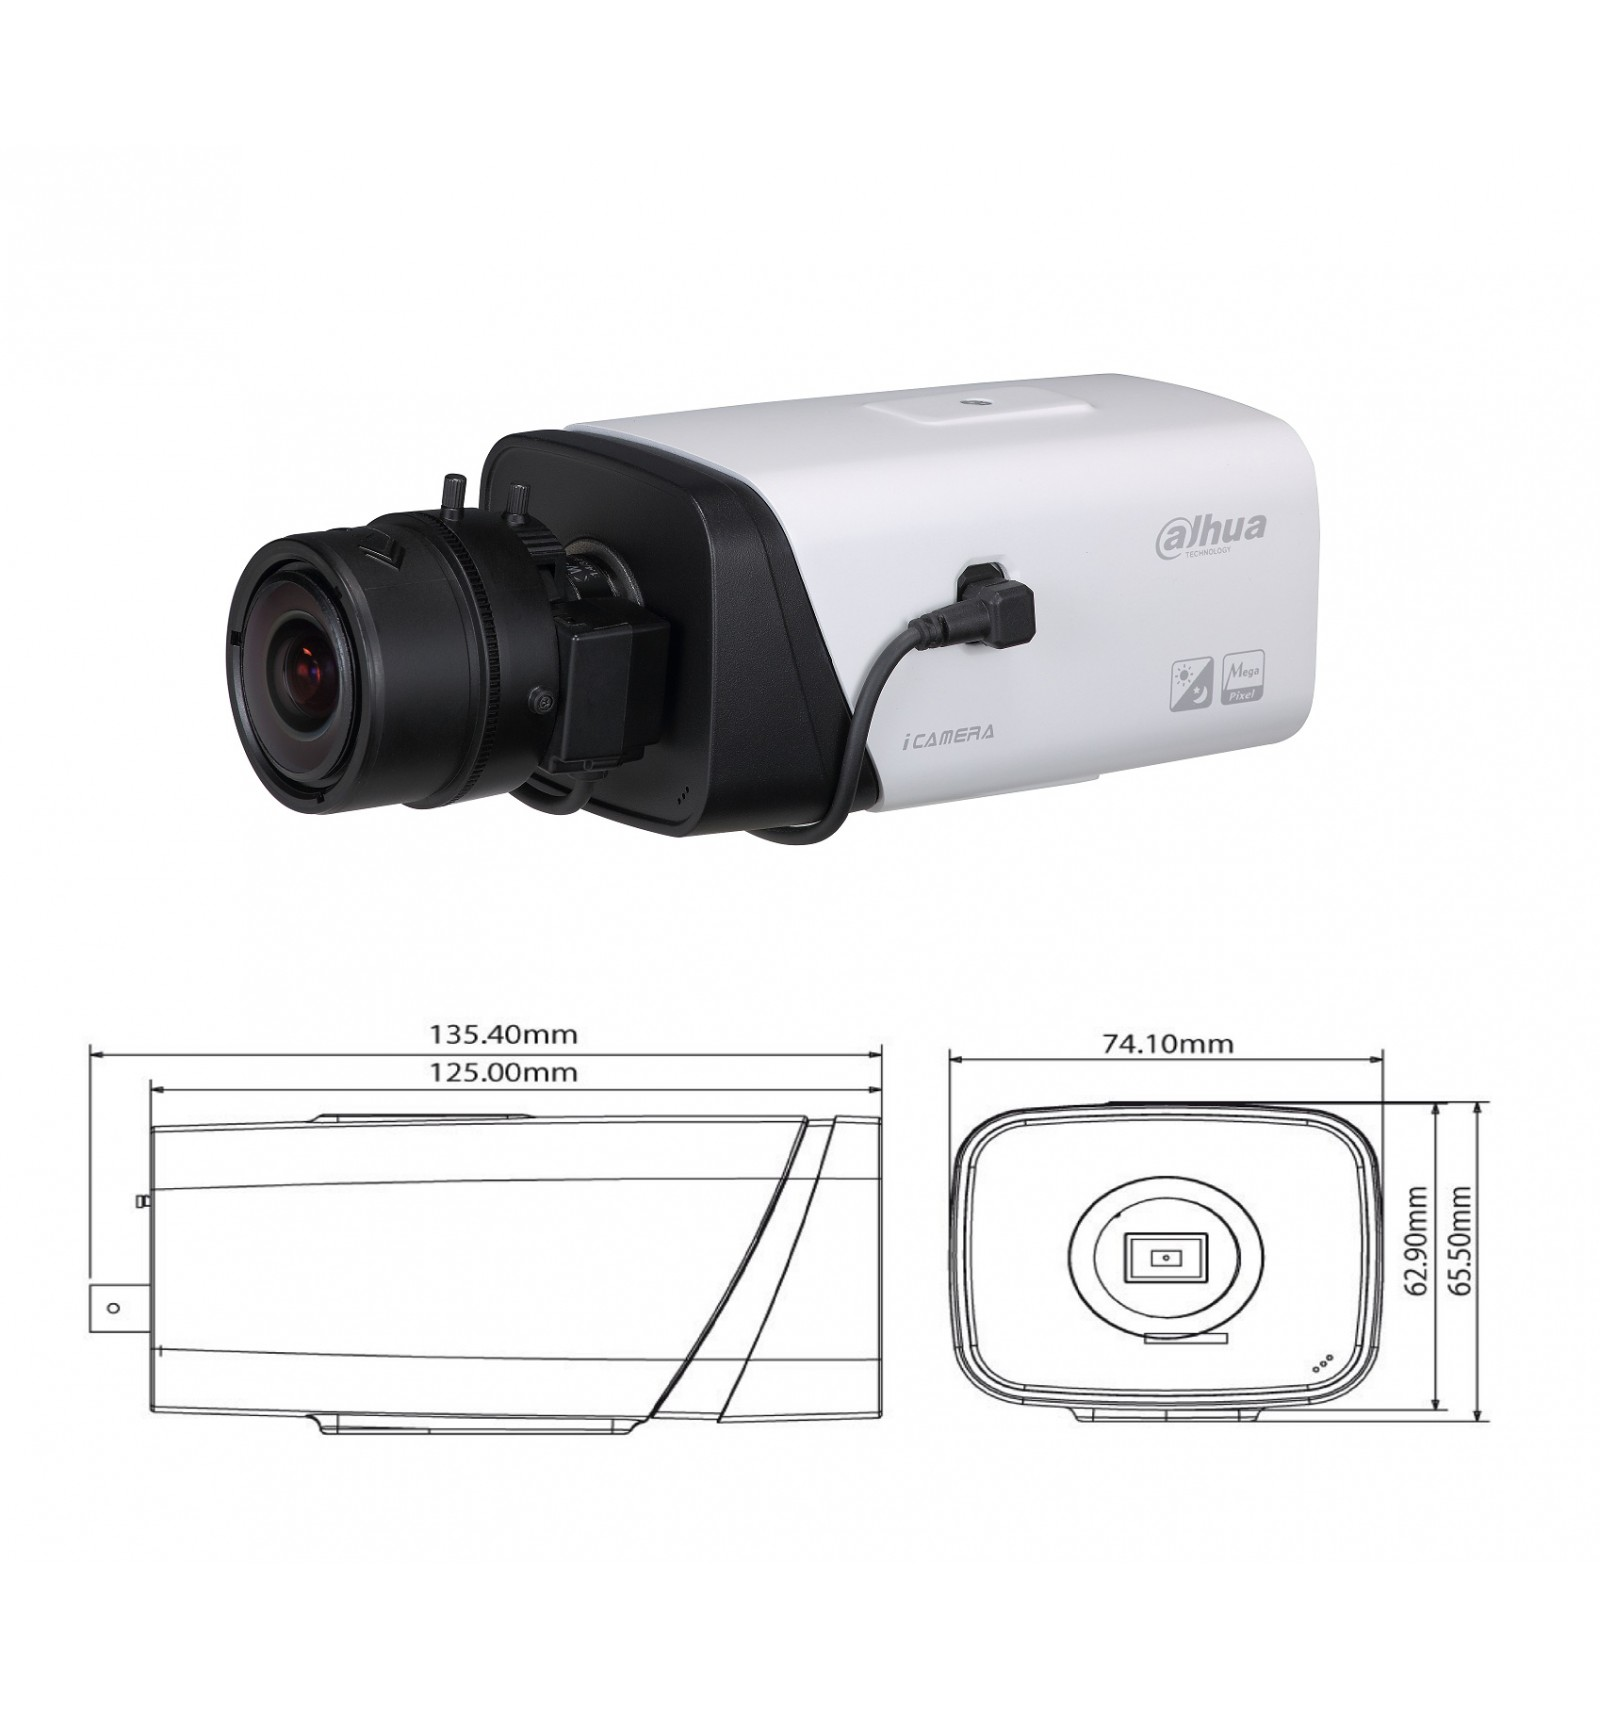 Camara de vigilancia box ip sin optica resoluci n hasta - Camaras de vigilancia ip ...